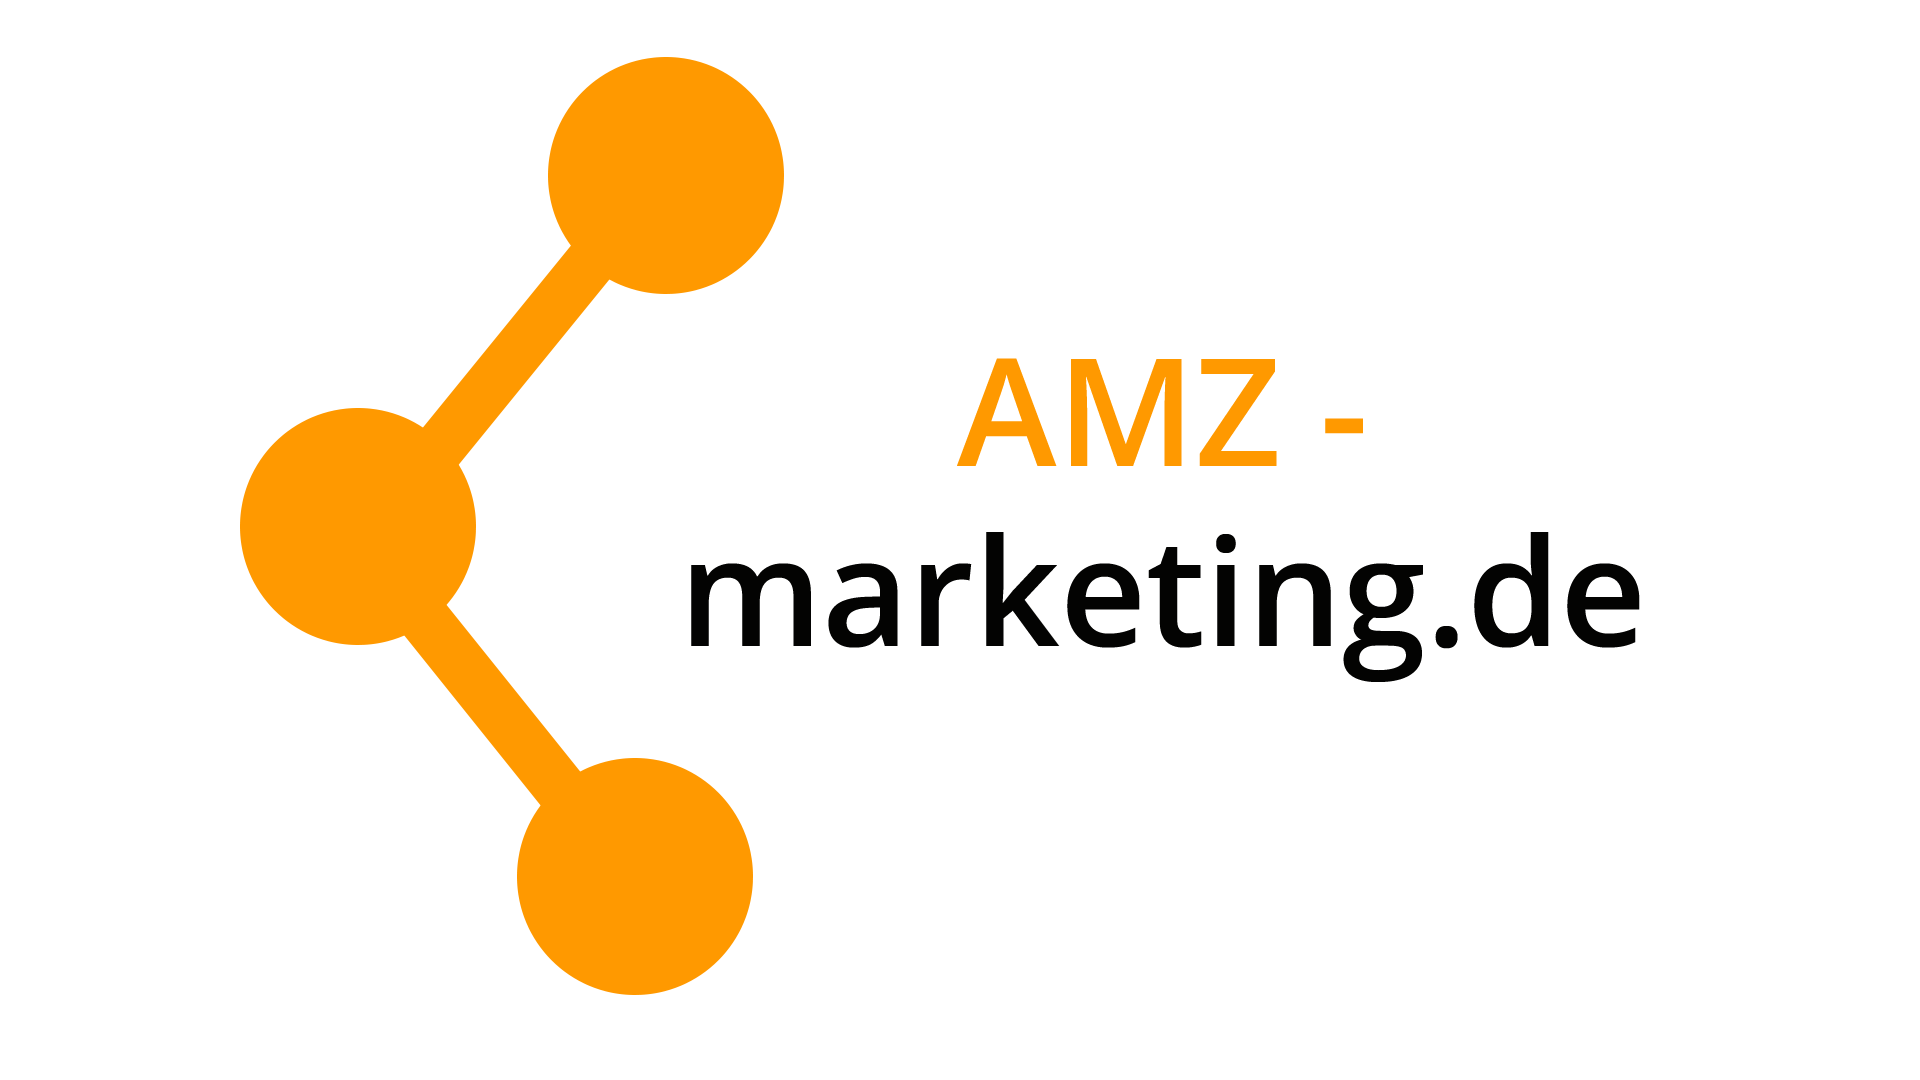 Amz-marketing.de